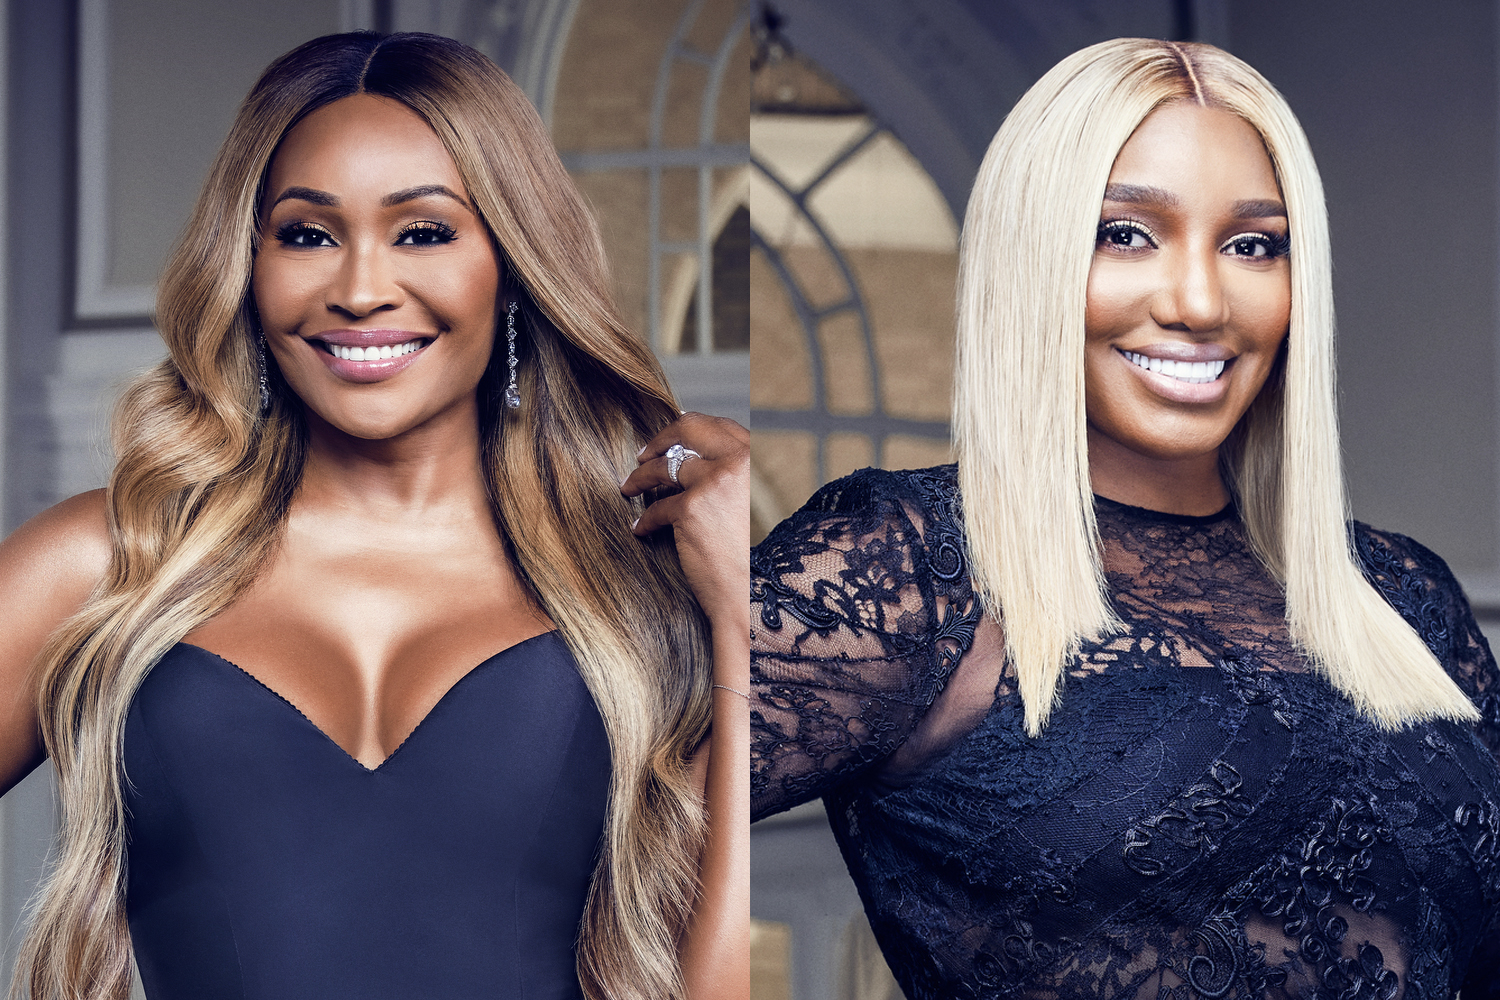 nene-leakes-reportedly-reached-out-to-cynthia-bailey-hours-before-her-wedding-despite-not-attending-it-details